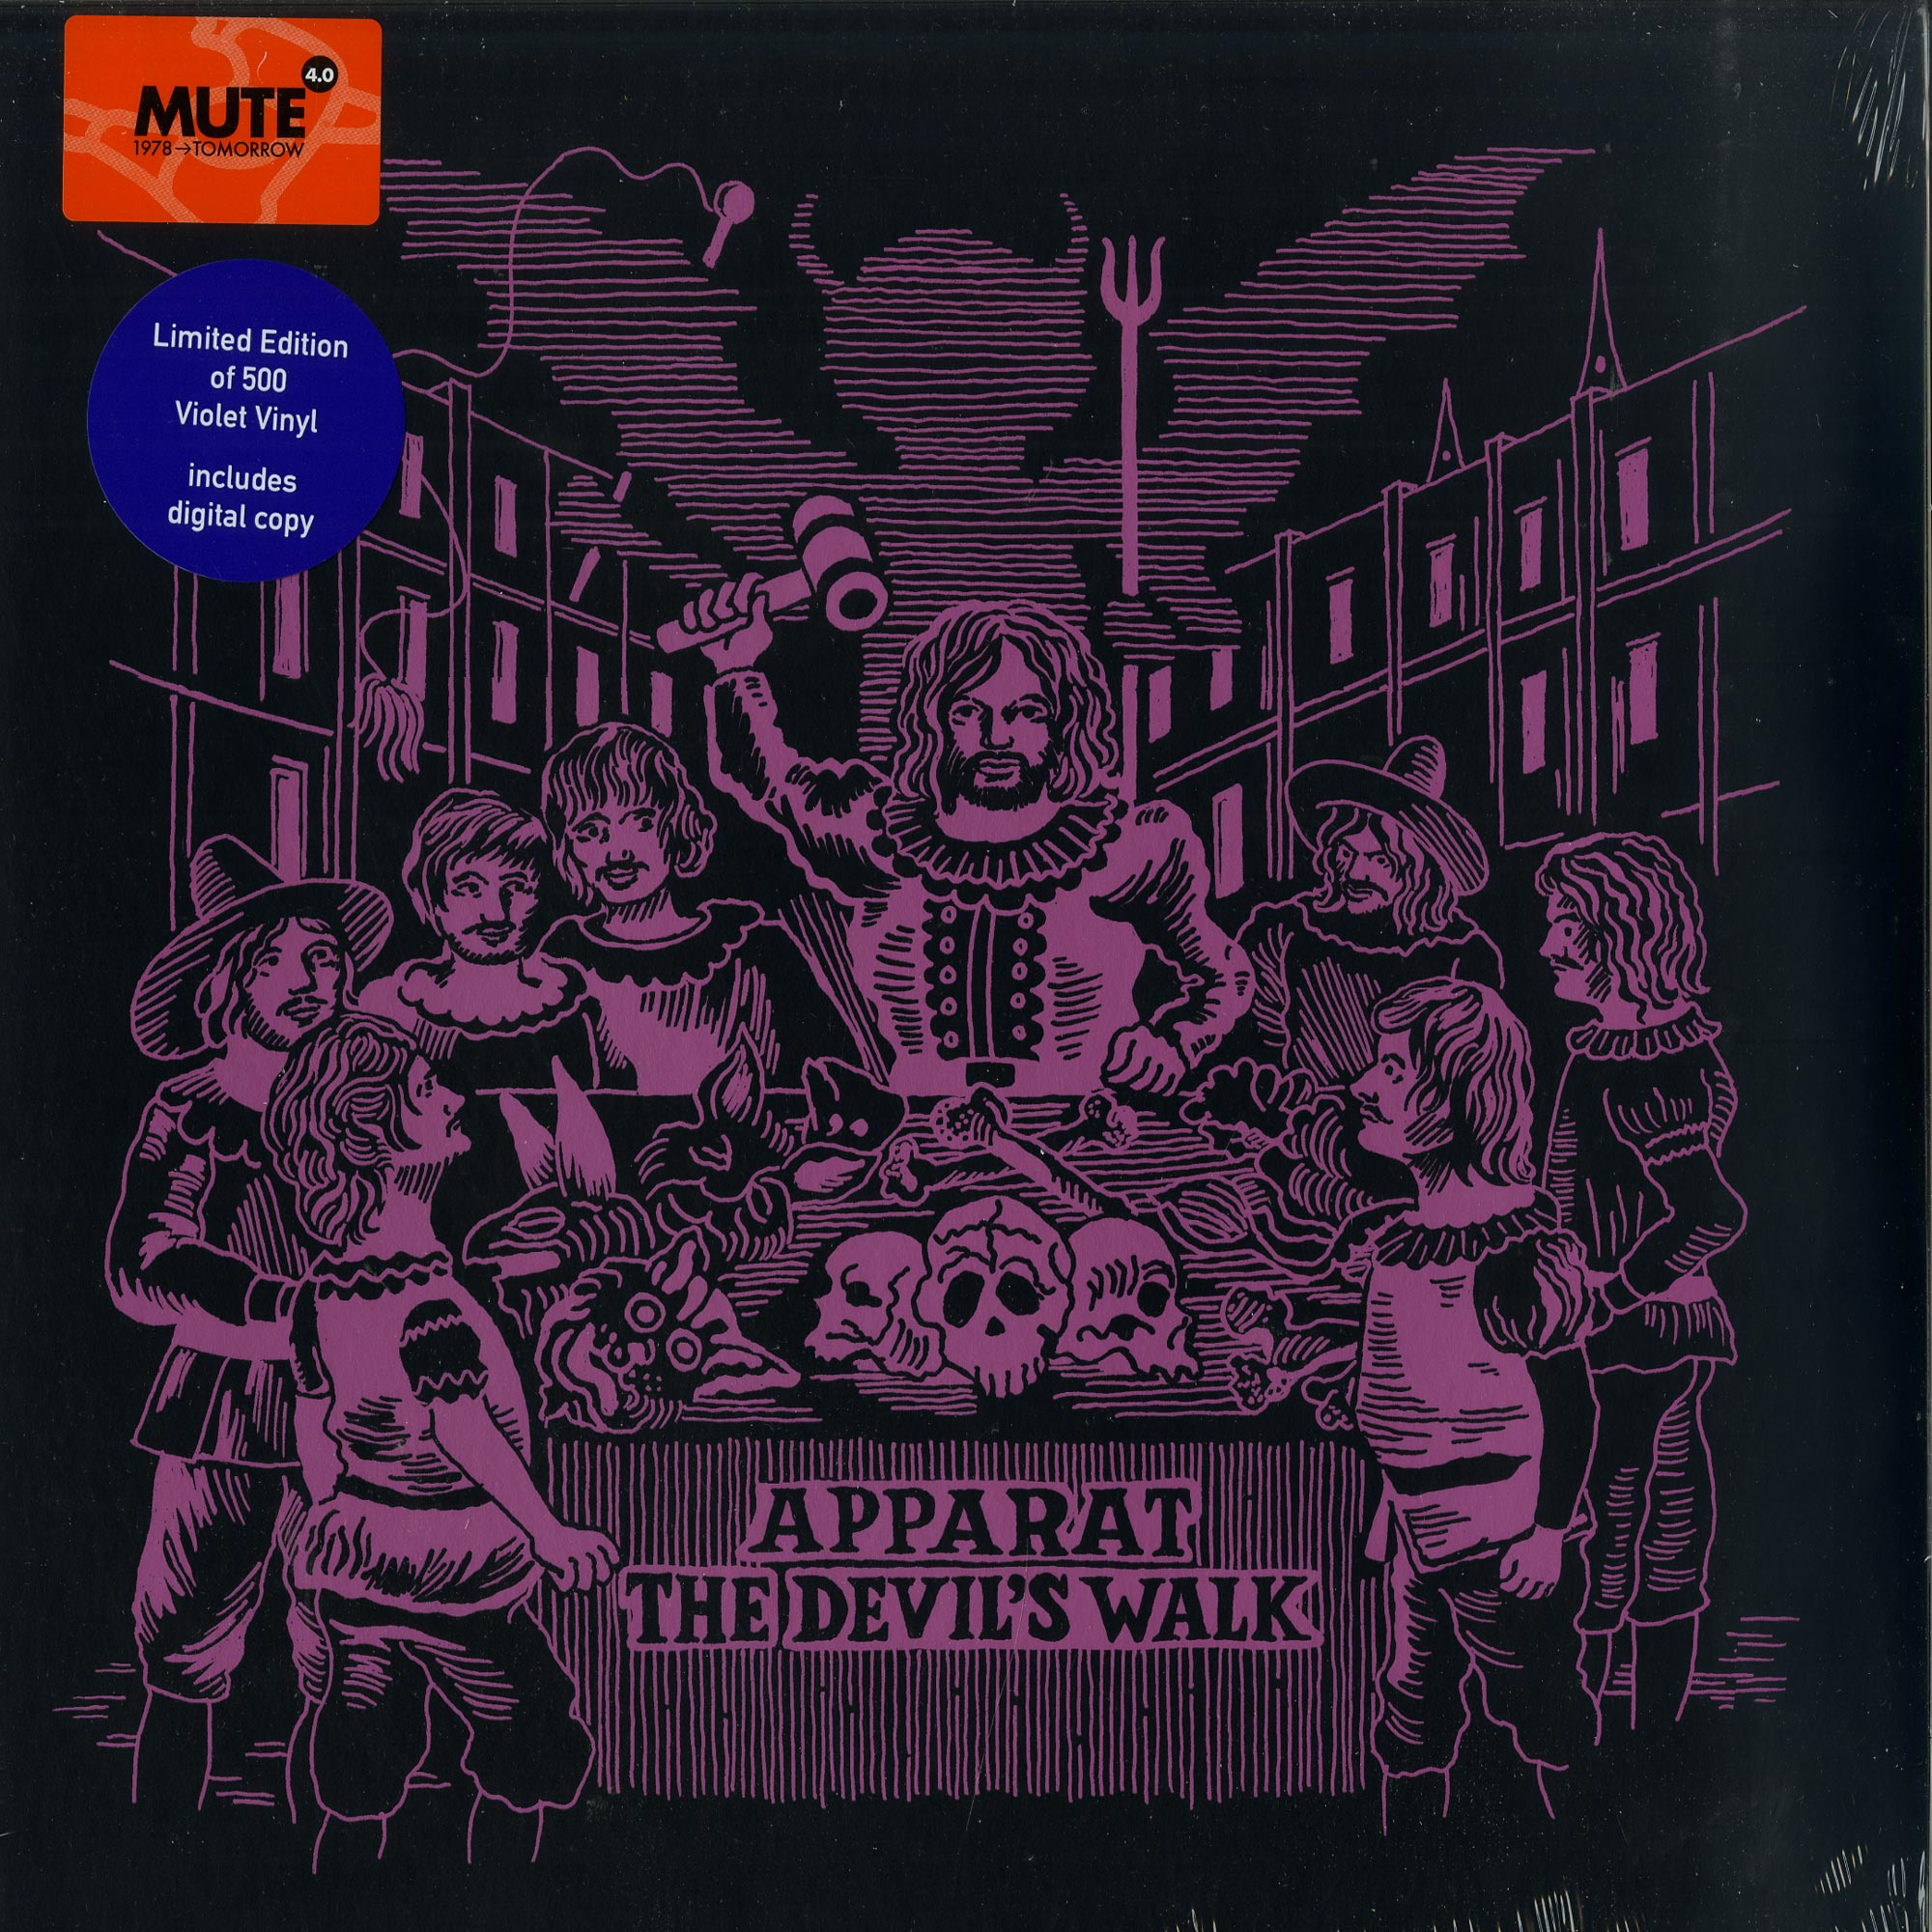 Apparat - THE DEVILS WALK